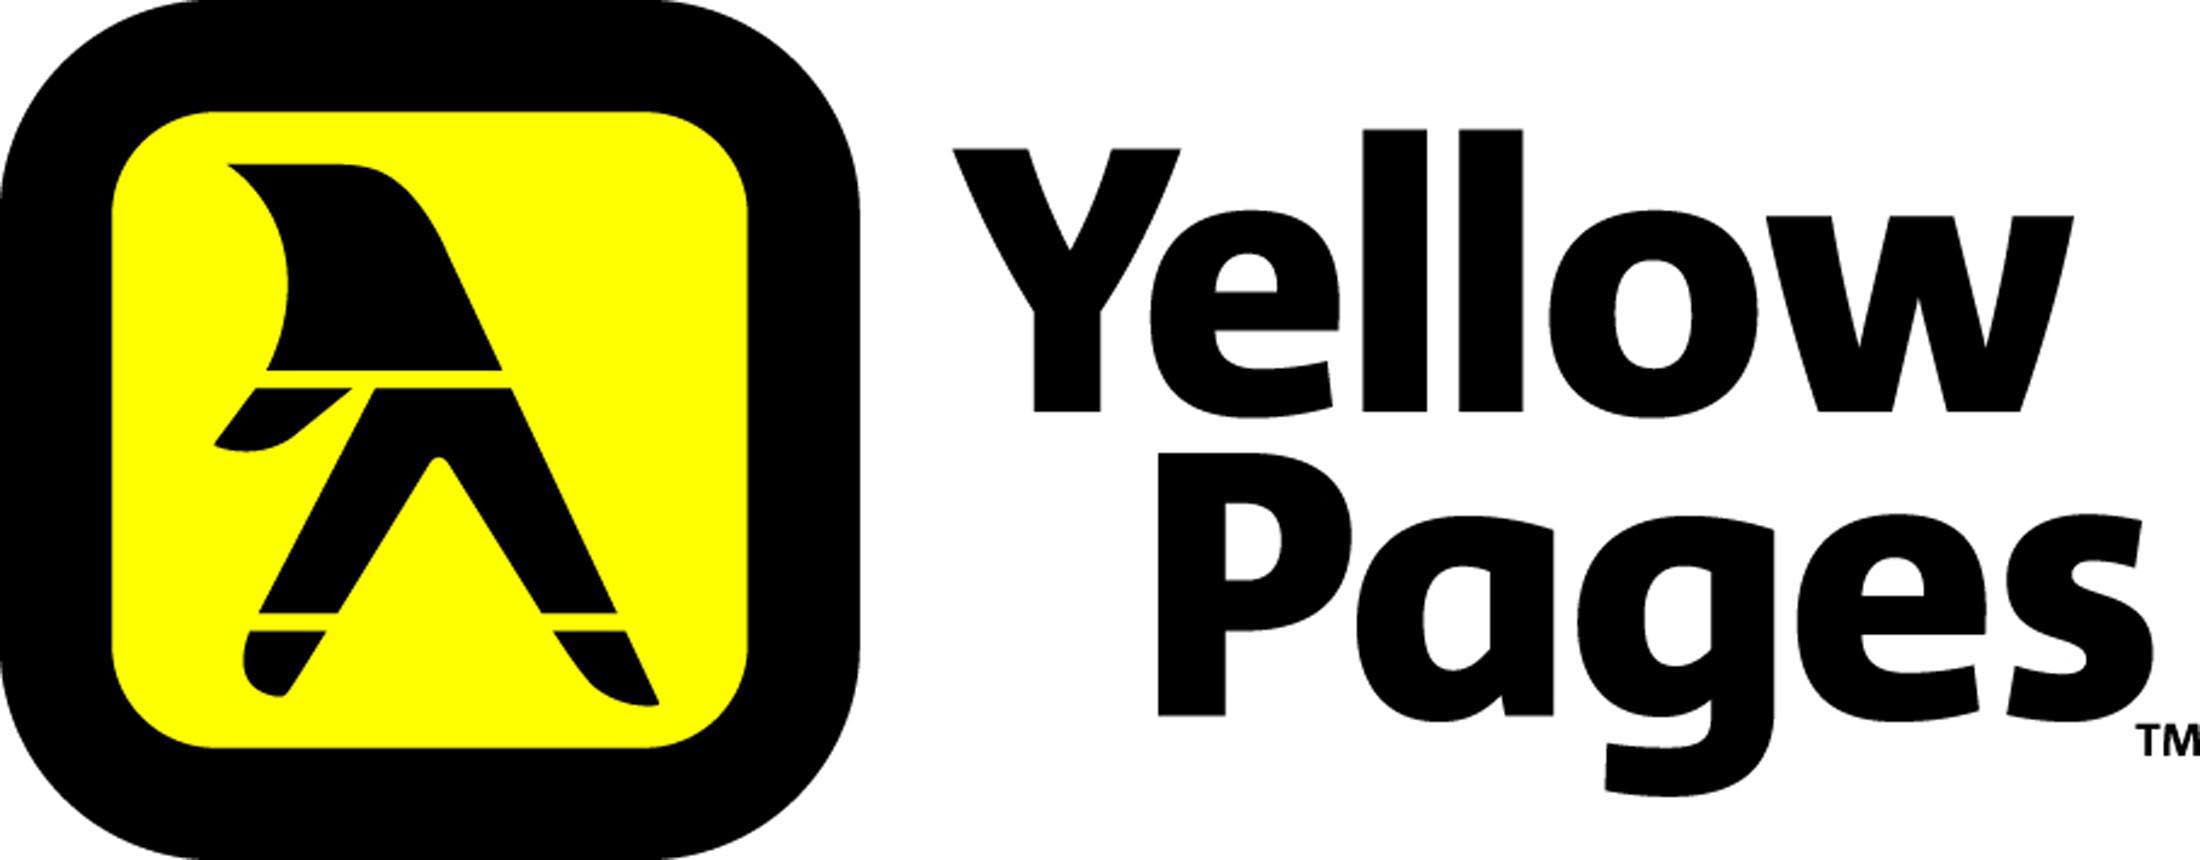 Yellow Pages Logo Wallpaper